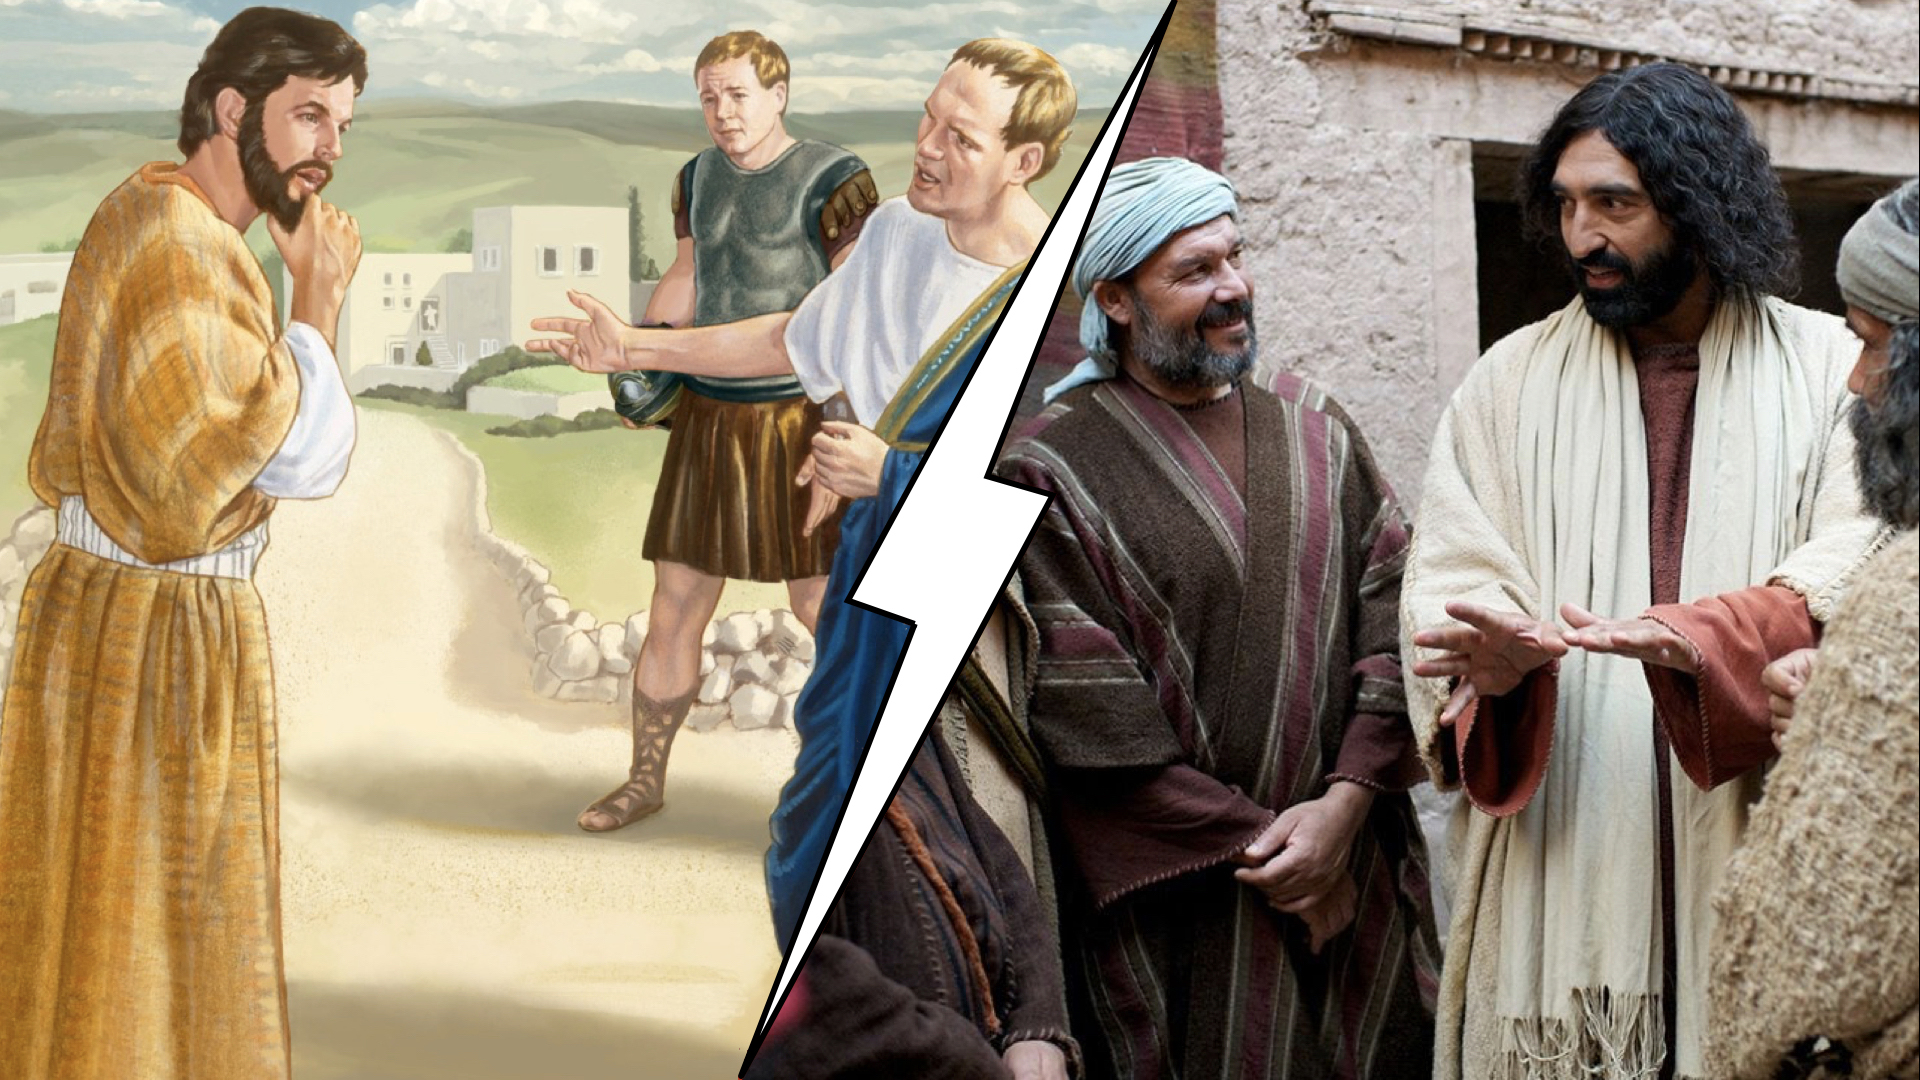 Contrasting images on the ethnicity of Jesus. The sermon for this week explores why our understanding of Jesus as a Jewish man who was poor and part of an oppressed minority matters deeply in how we understand the faith of the Centurion.